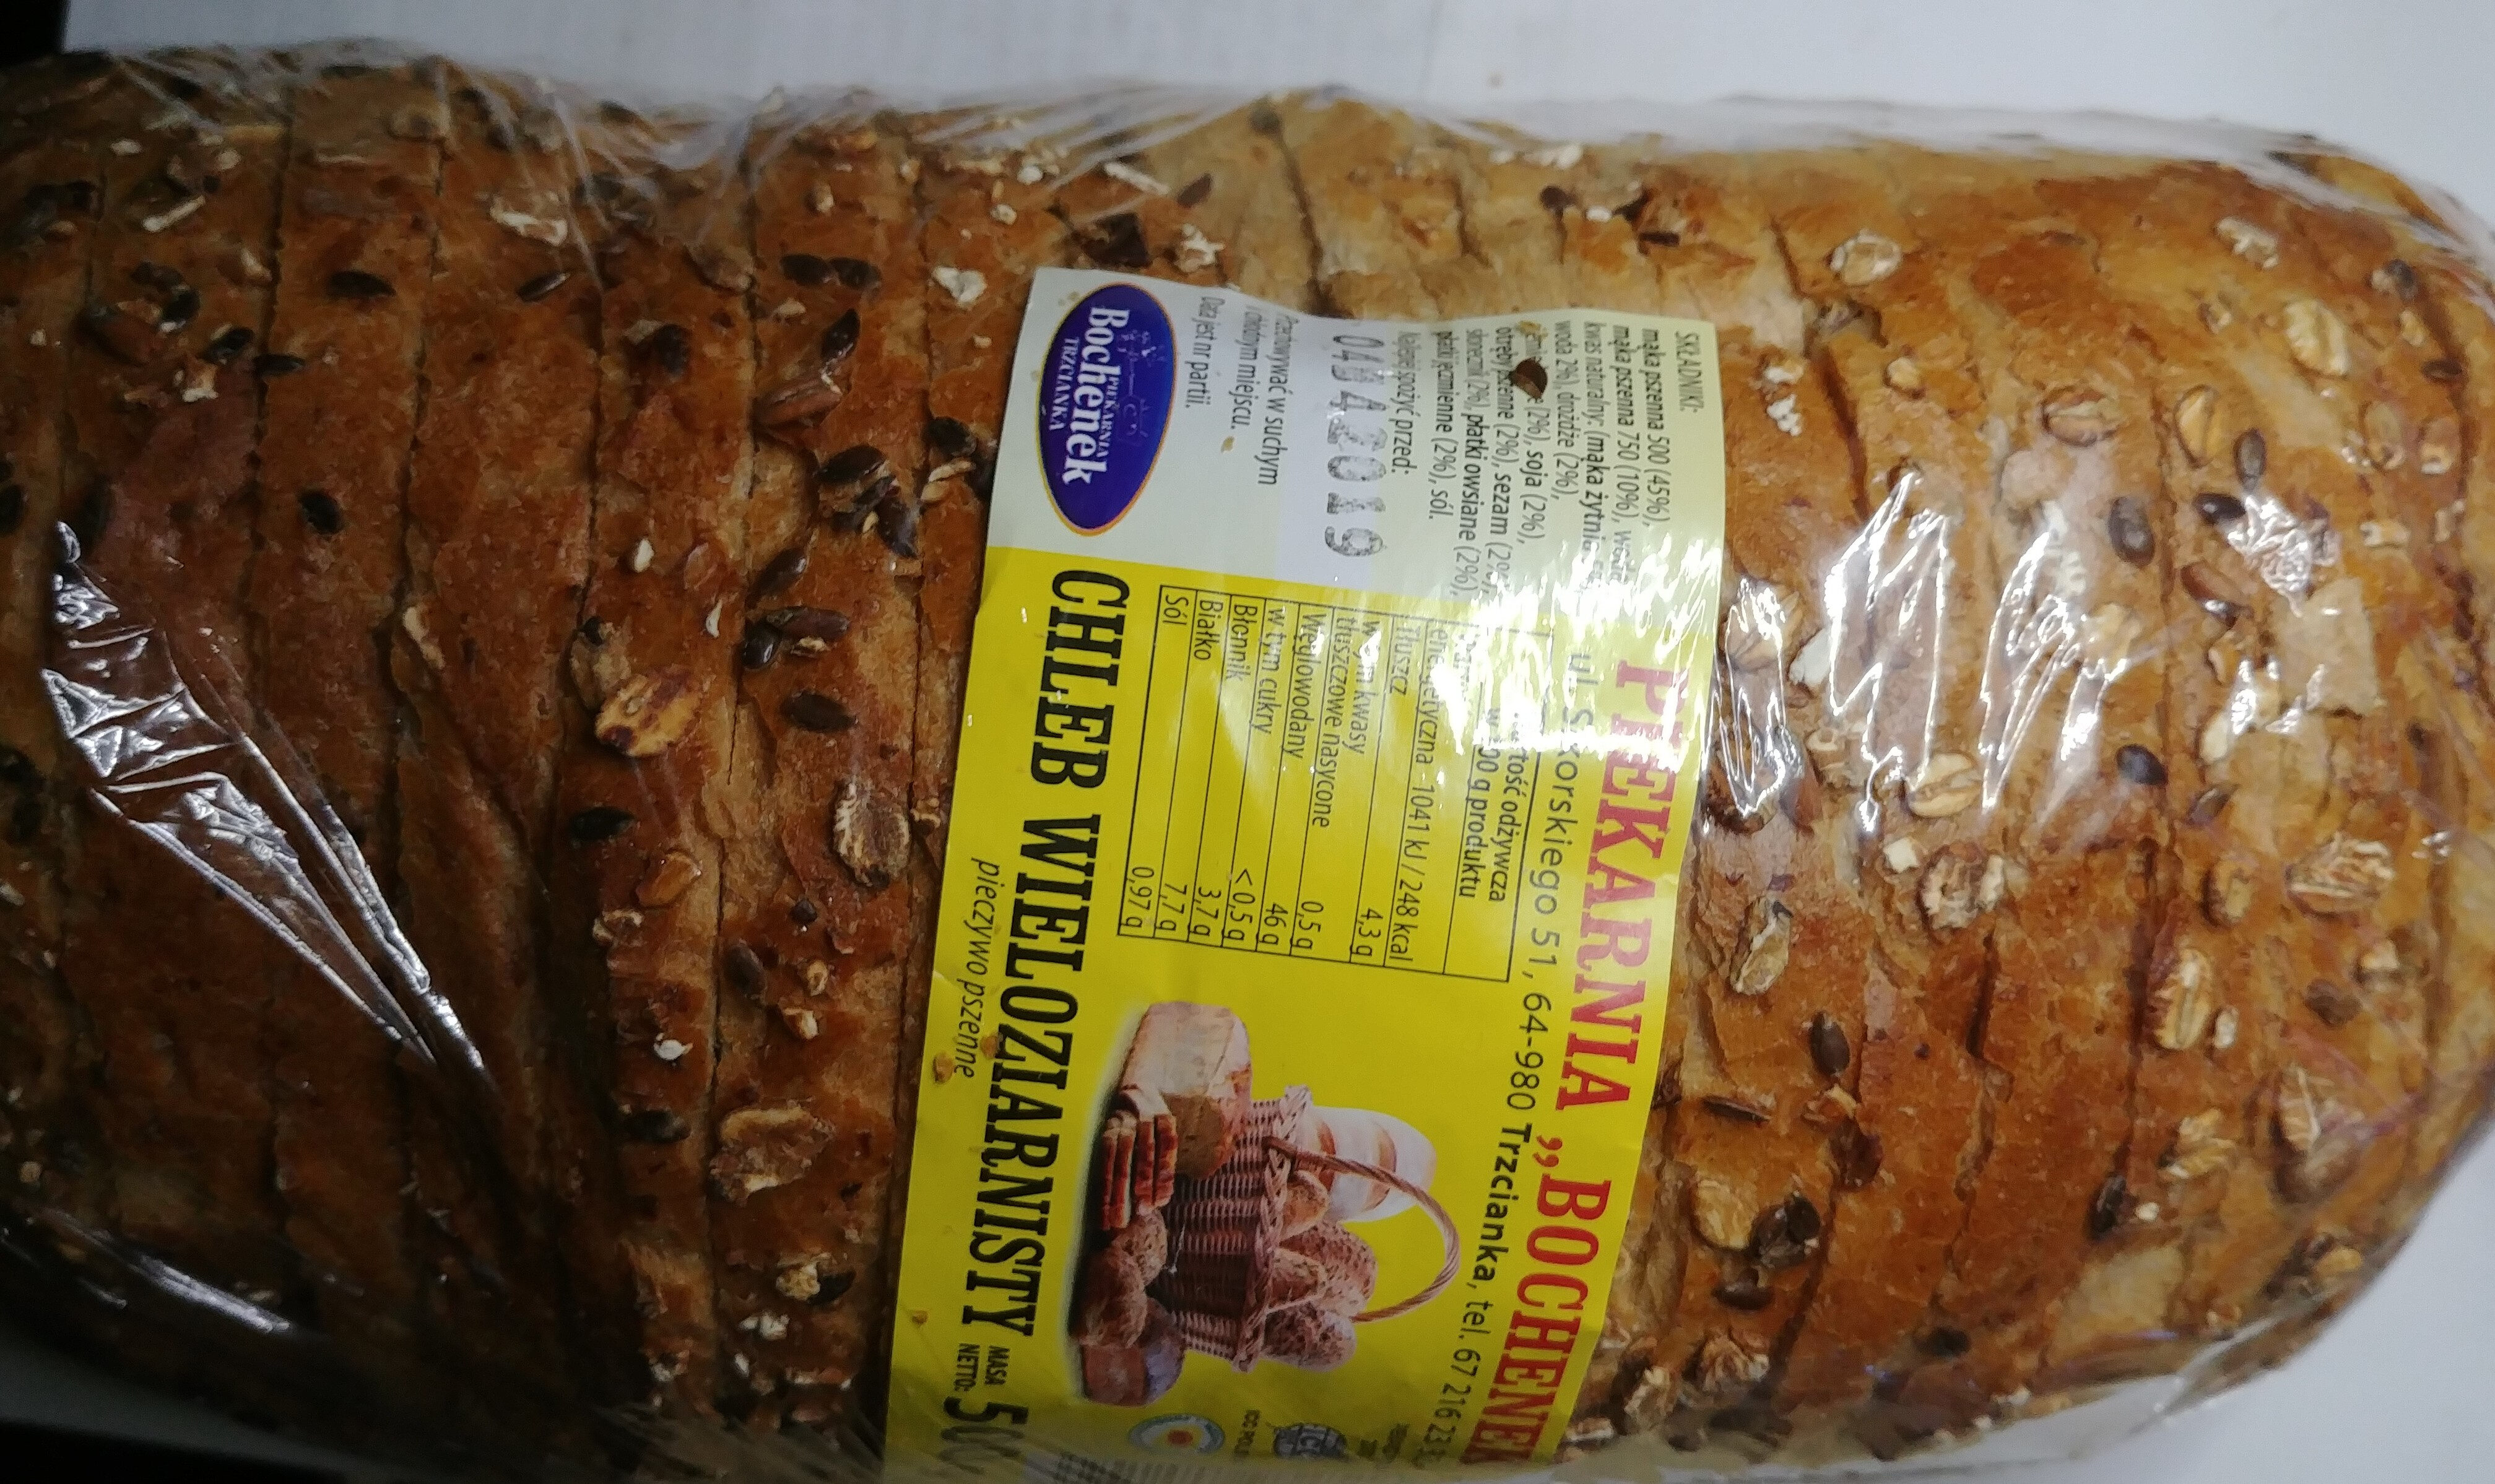 Chleb wieloziarnisty - Product - pl